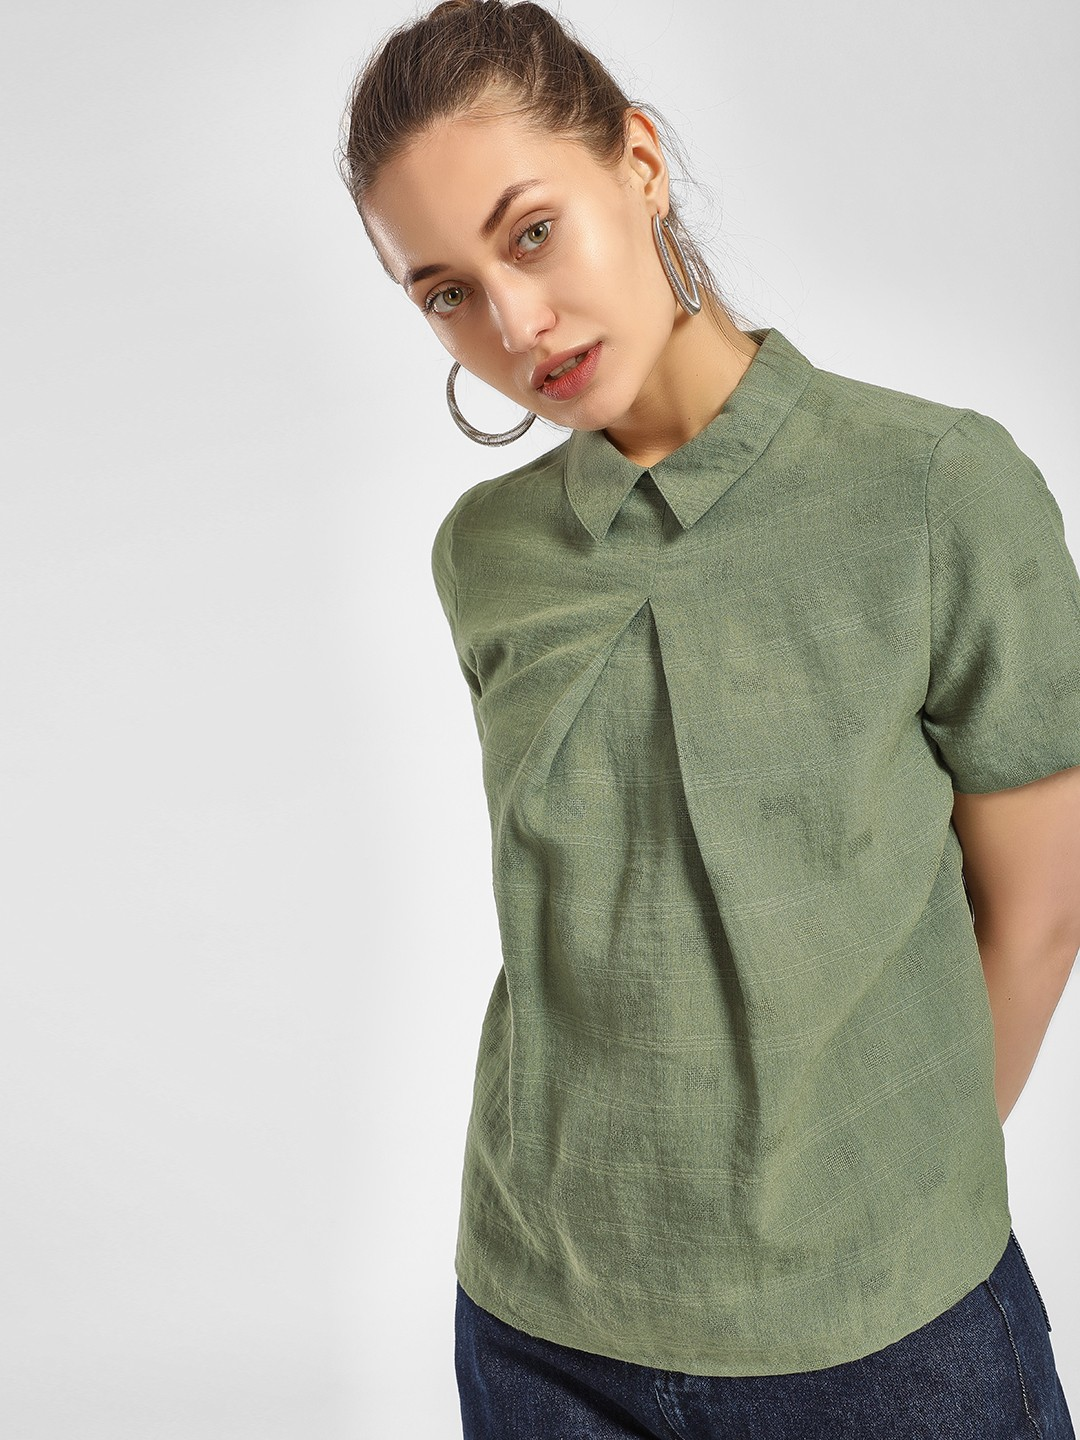 PostFold Olive Peter Pan Collar Pleated Blouse 1